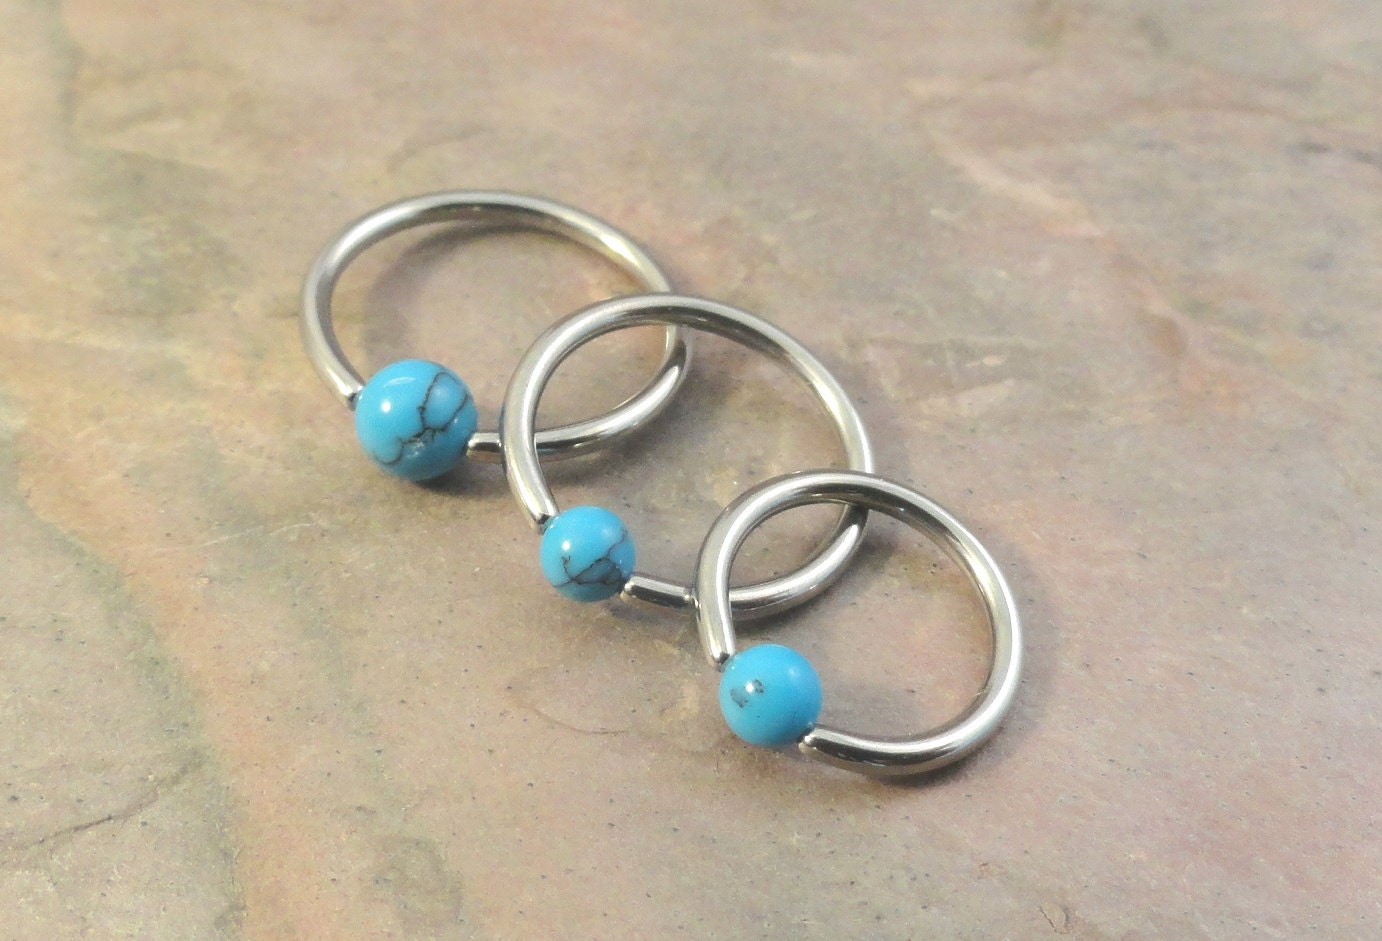 16 hoop earrings 16 turquoise cbr cartilage hoop earring tragus 7989